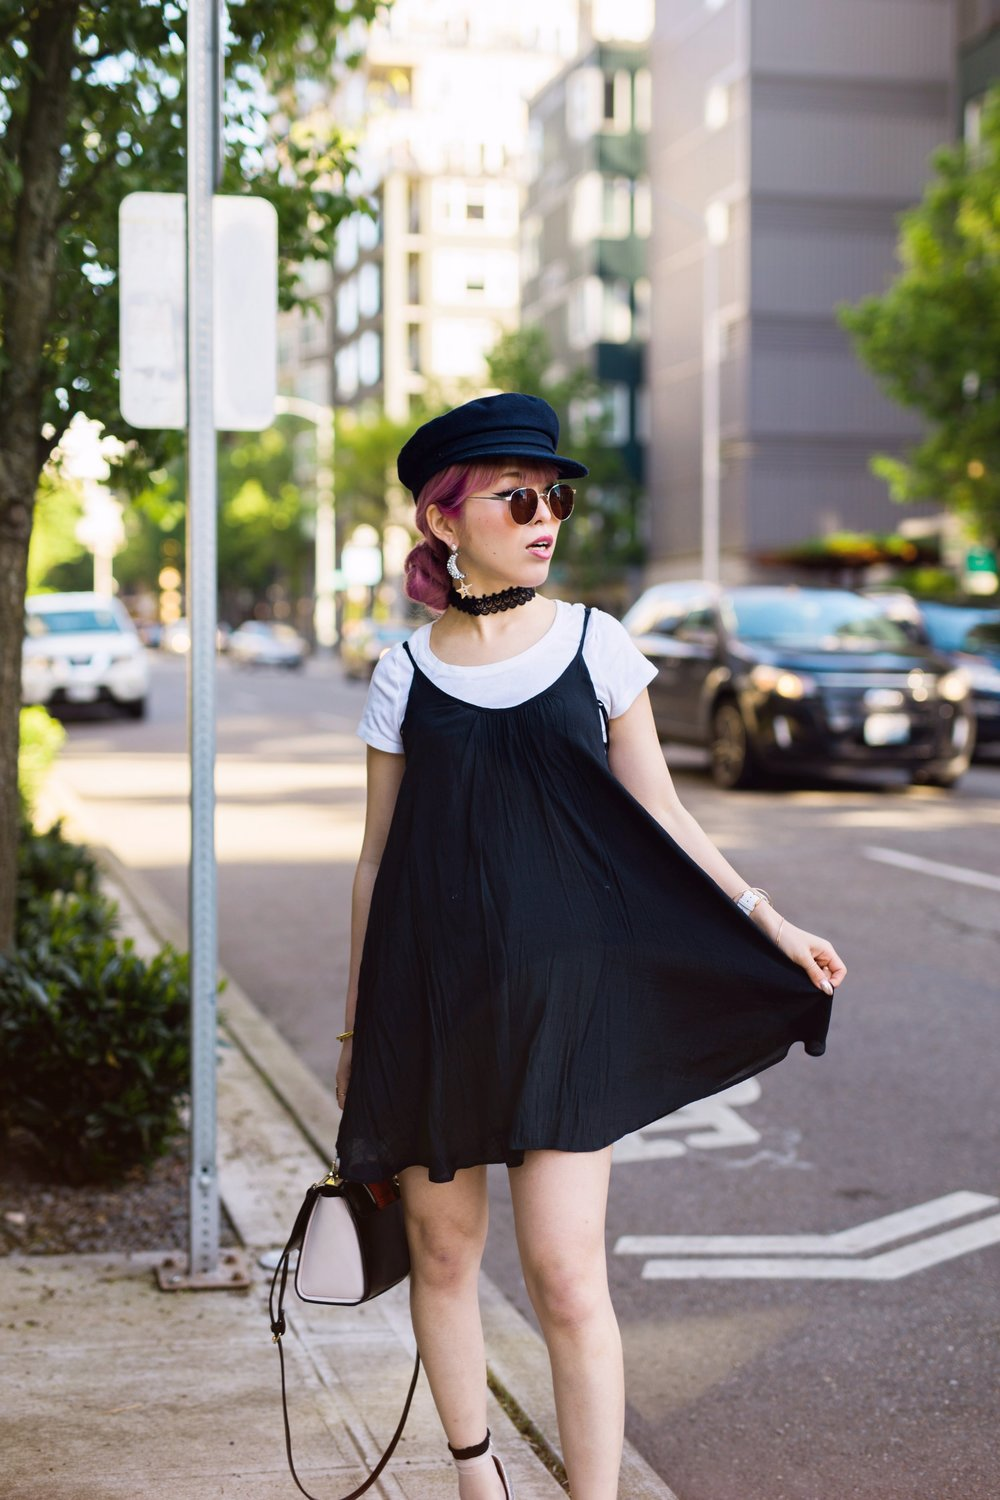 Aritzia News Boy Cap_Polette Retro Round Sunglasses_Mango Moon Star Earrings_Shopdixi Lace Choker_Forever 21 White Tee_Urban Outfitters Little Black Dress_Zara Bag_Sheer ankle Socks_ASOS Glitter Block heels Shoes_Aikas Love Closet_Seattle Fashion Blogger_Japanese_Pink hair 9